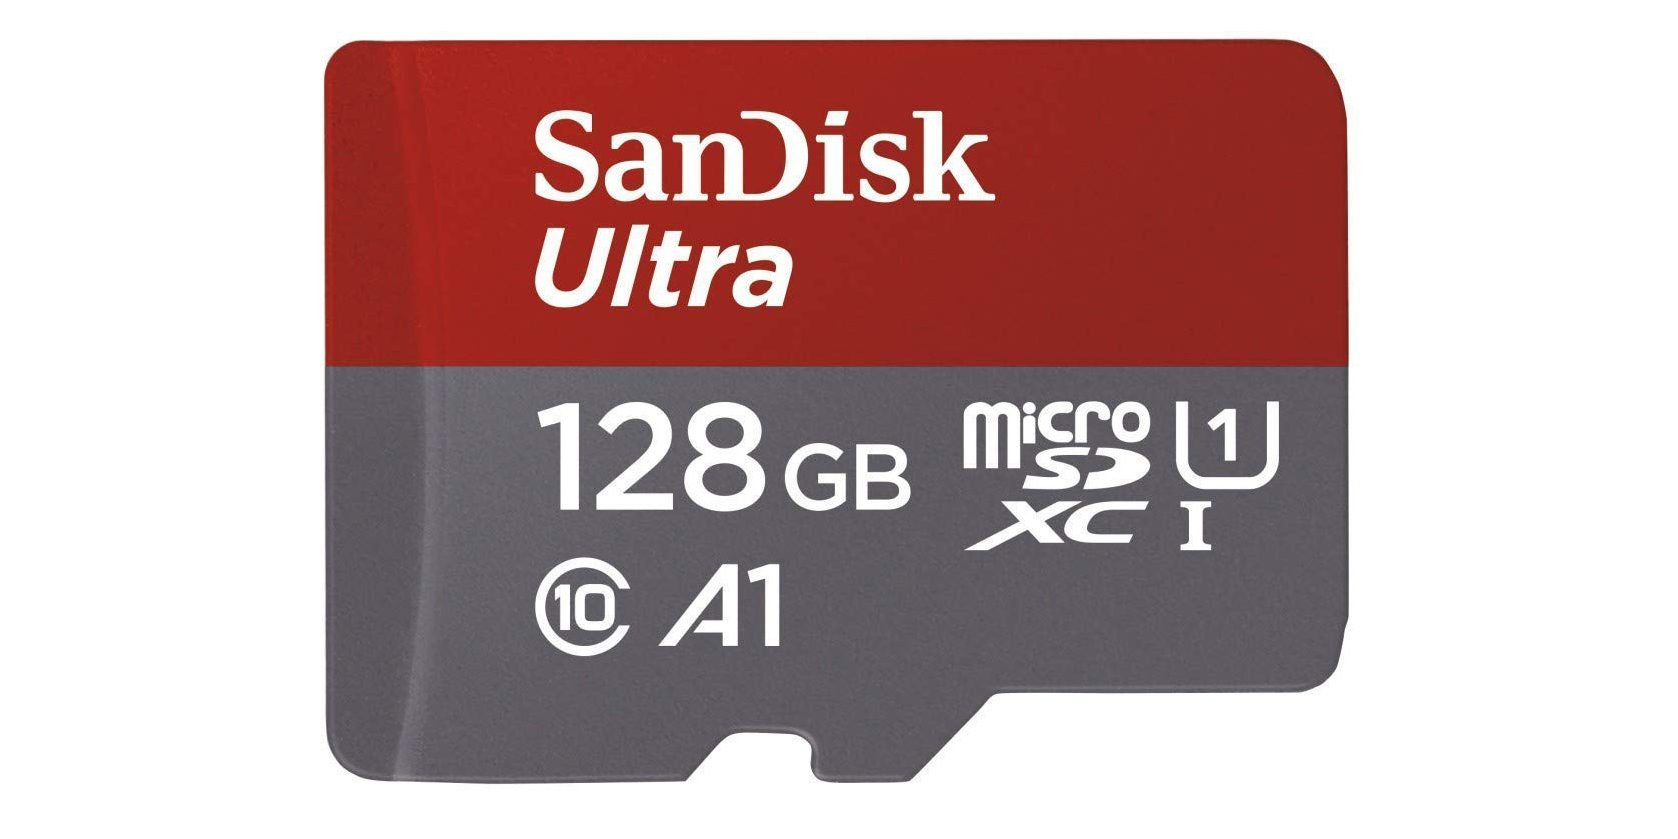 9to5Toys Letzter Anruf: SanDisk 128 GB microSD-Karte 18, A-T-Funkkopfhörer 120, Assistant Smart Plugs 7, mehr